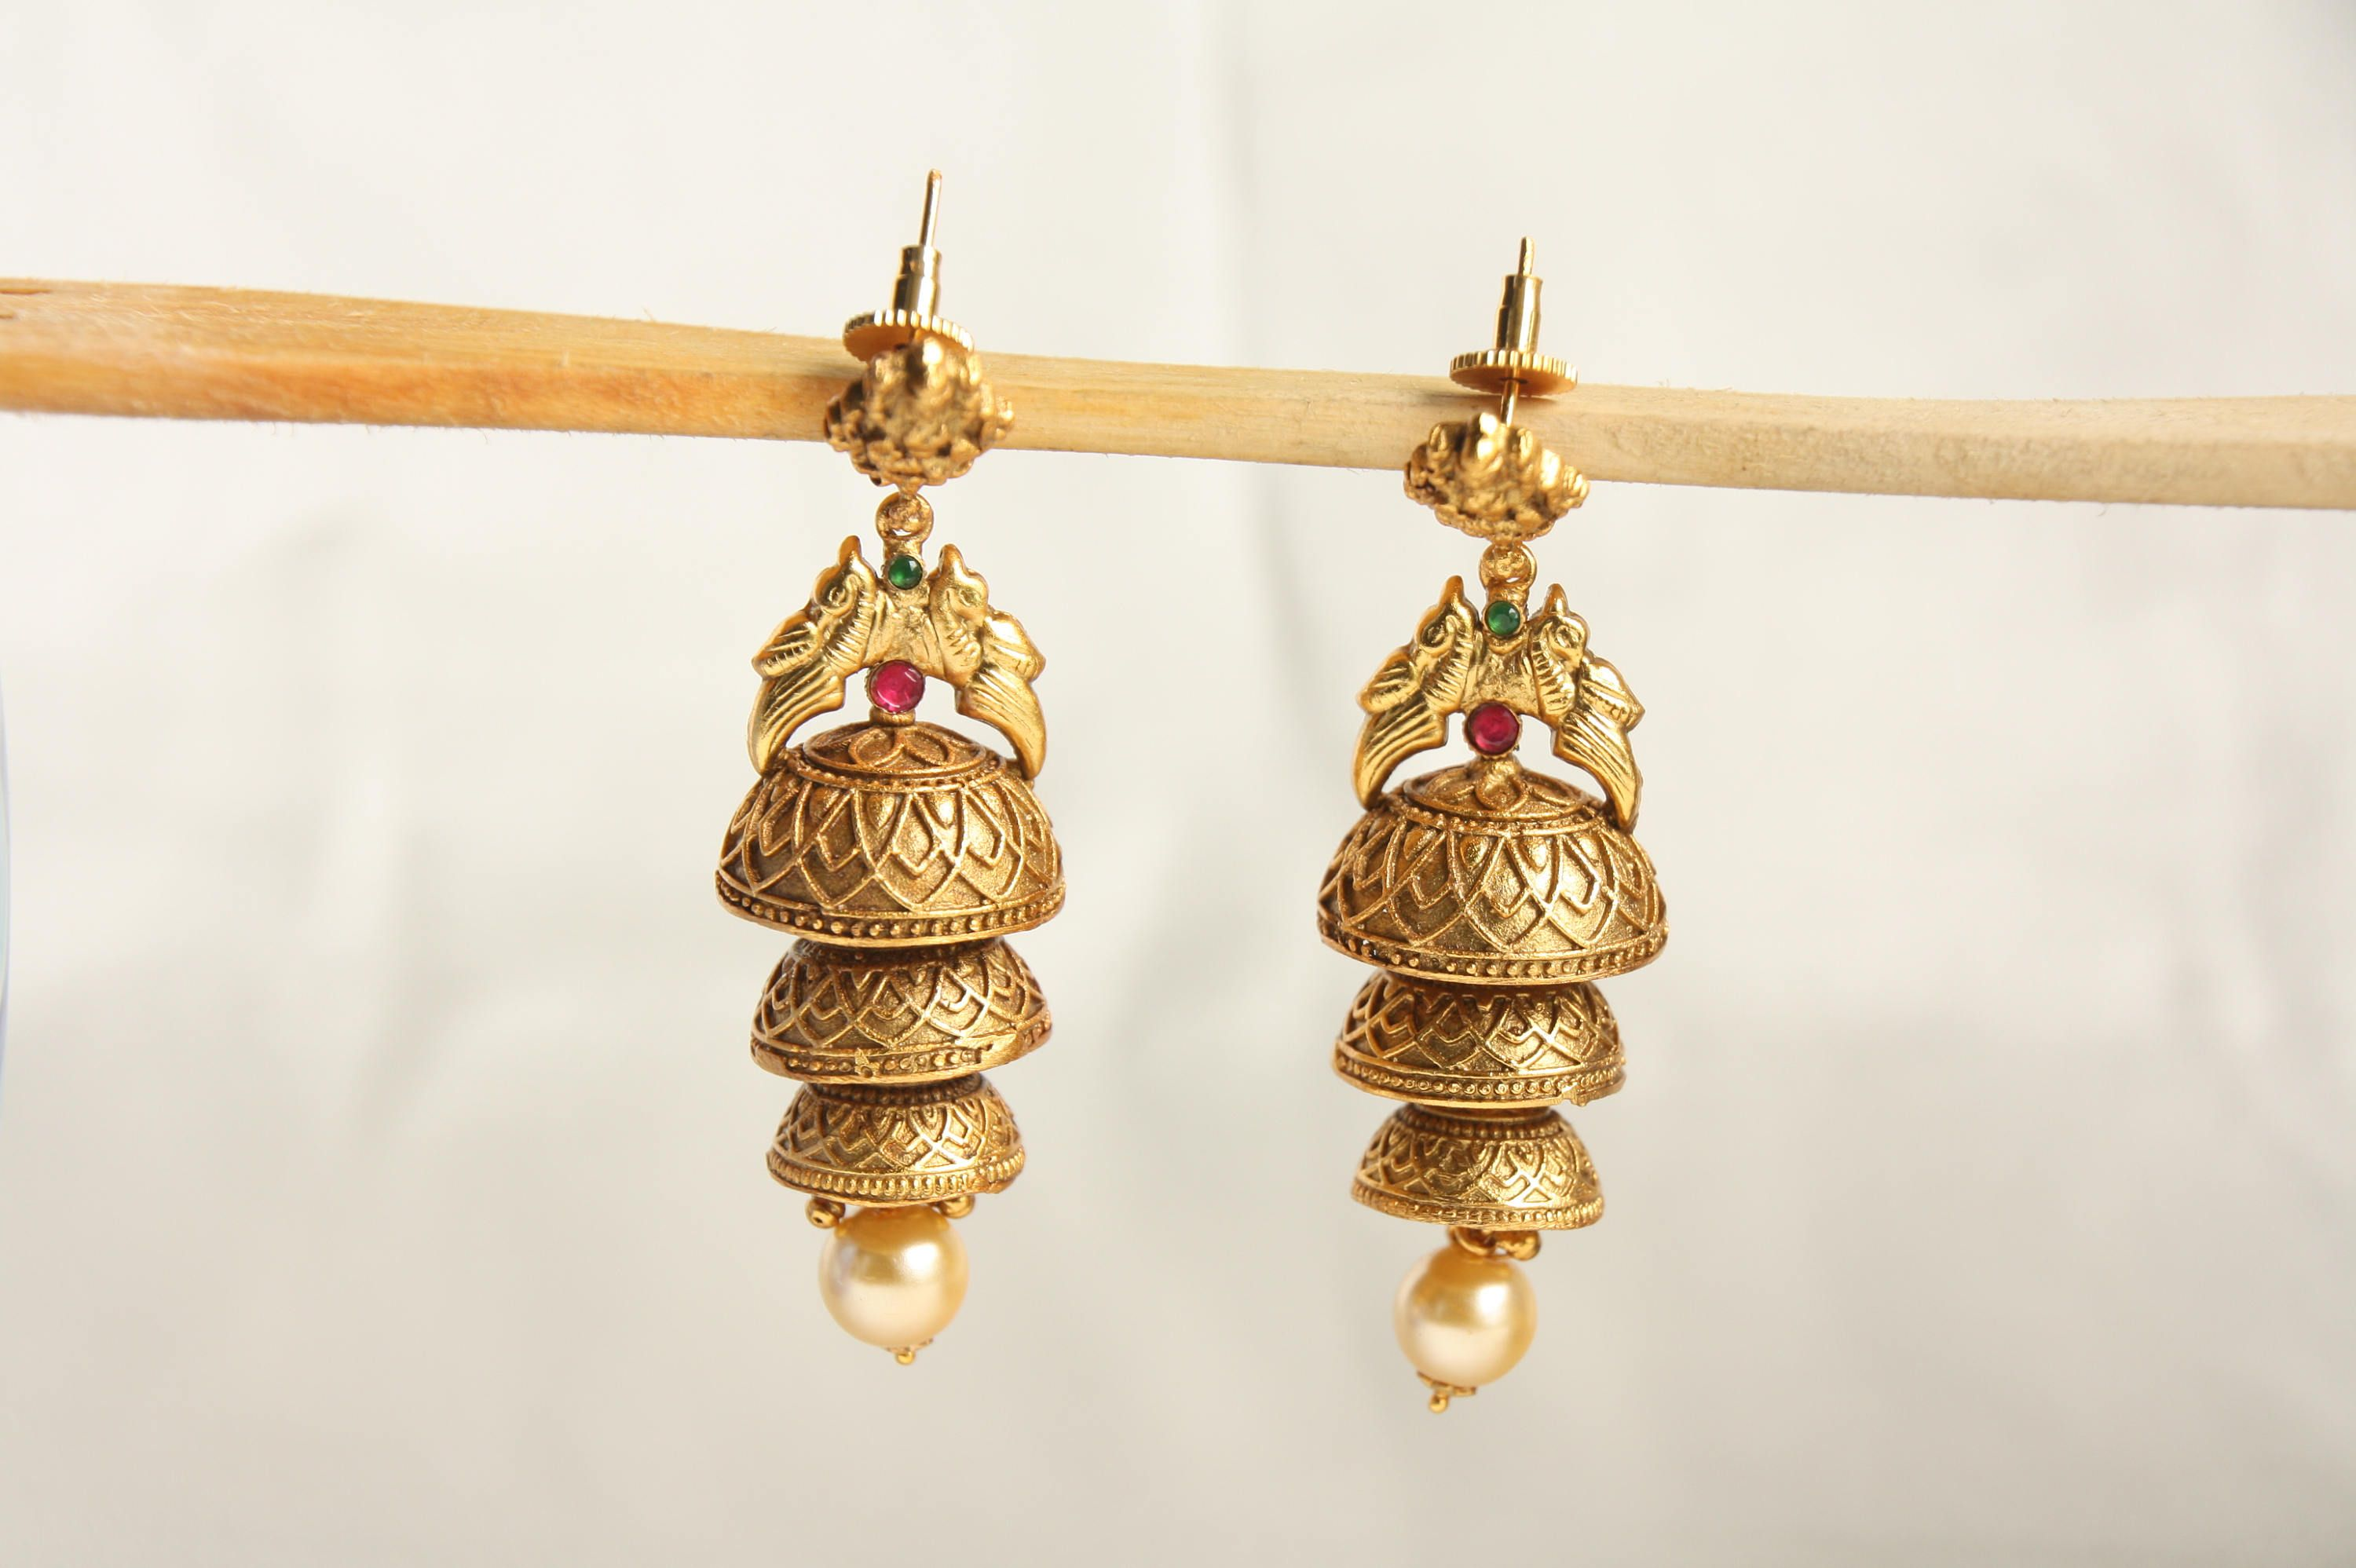 c1941f591 Antique Gold Finish Layered Jhumka Earring, Temple Jewelry, Traditional  Indian Jhumki, Pearldrop Jhumka, Gift For Her,Indian Wedding Jewelry by ...